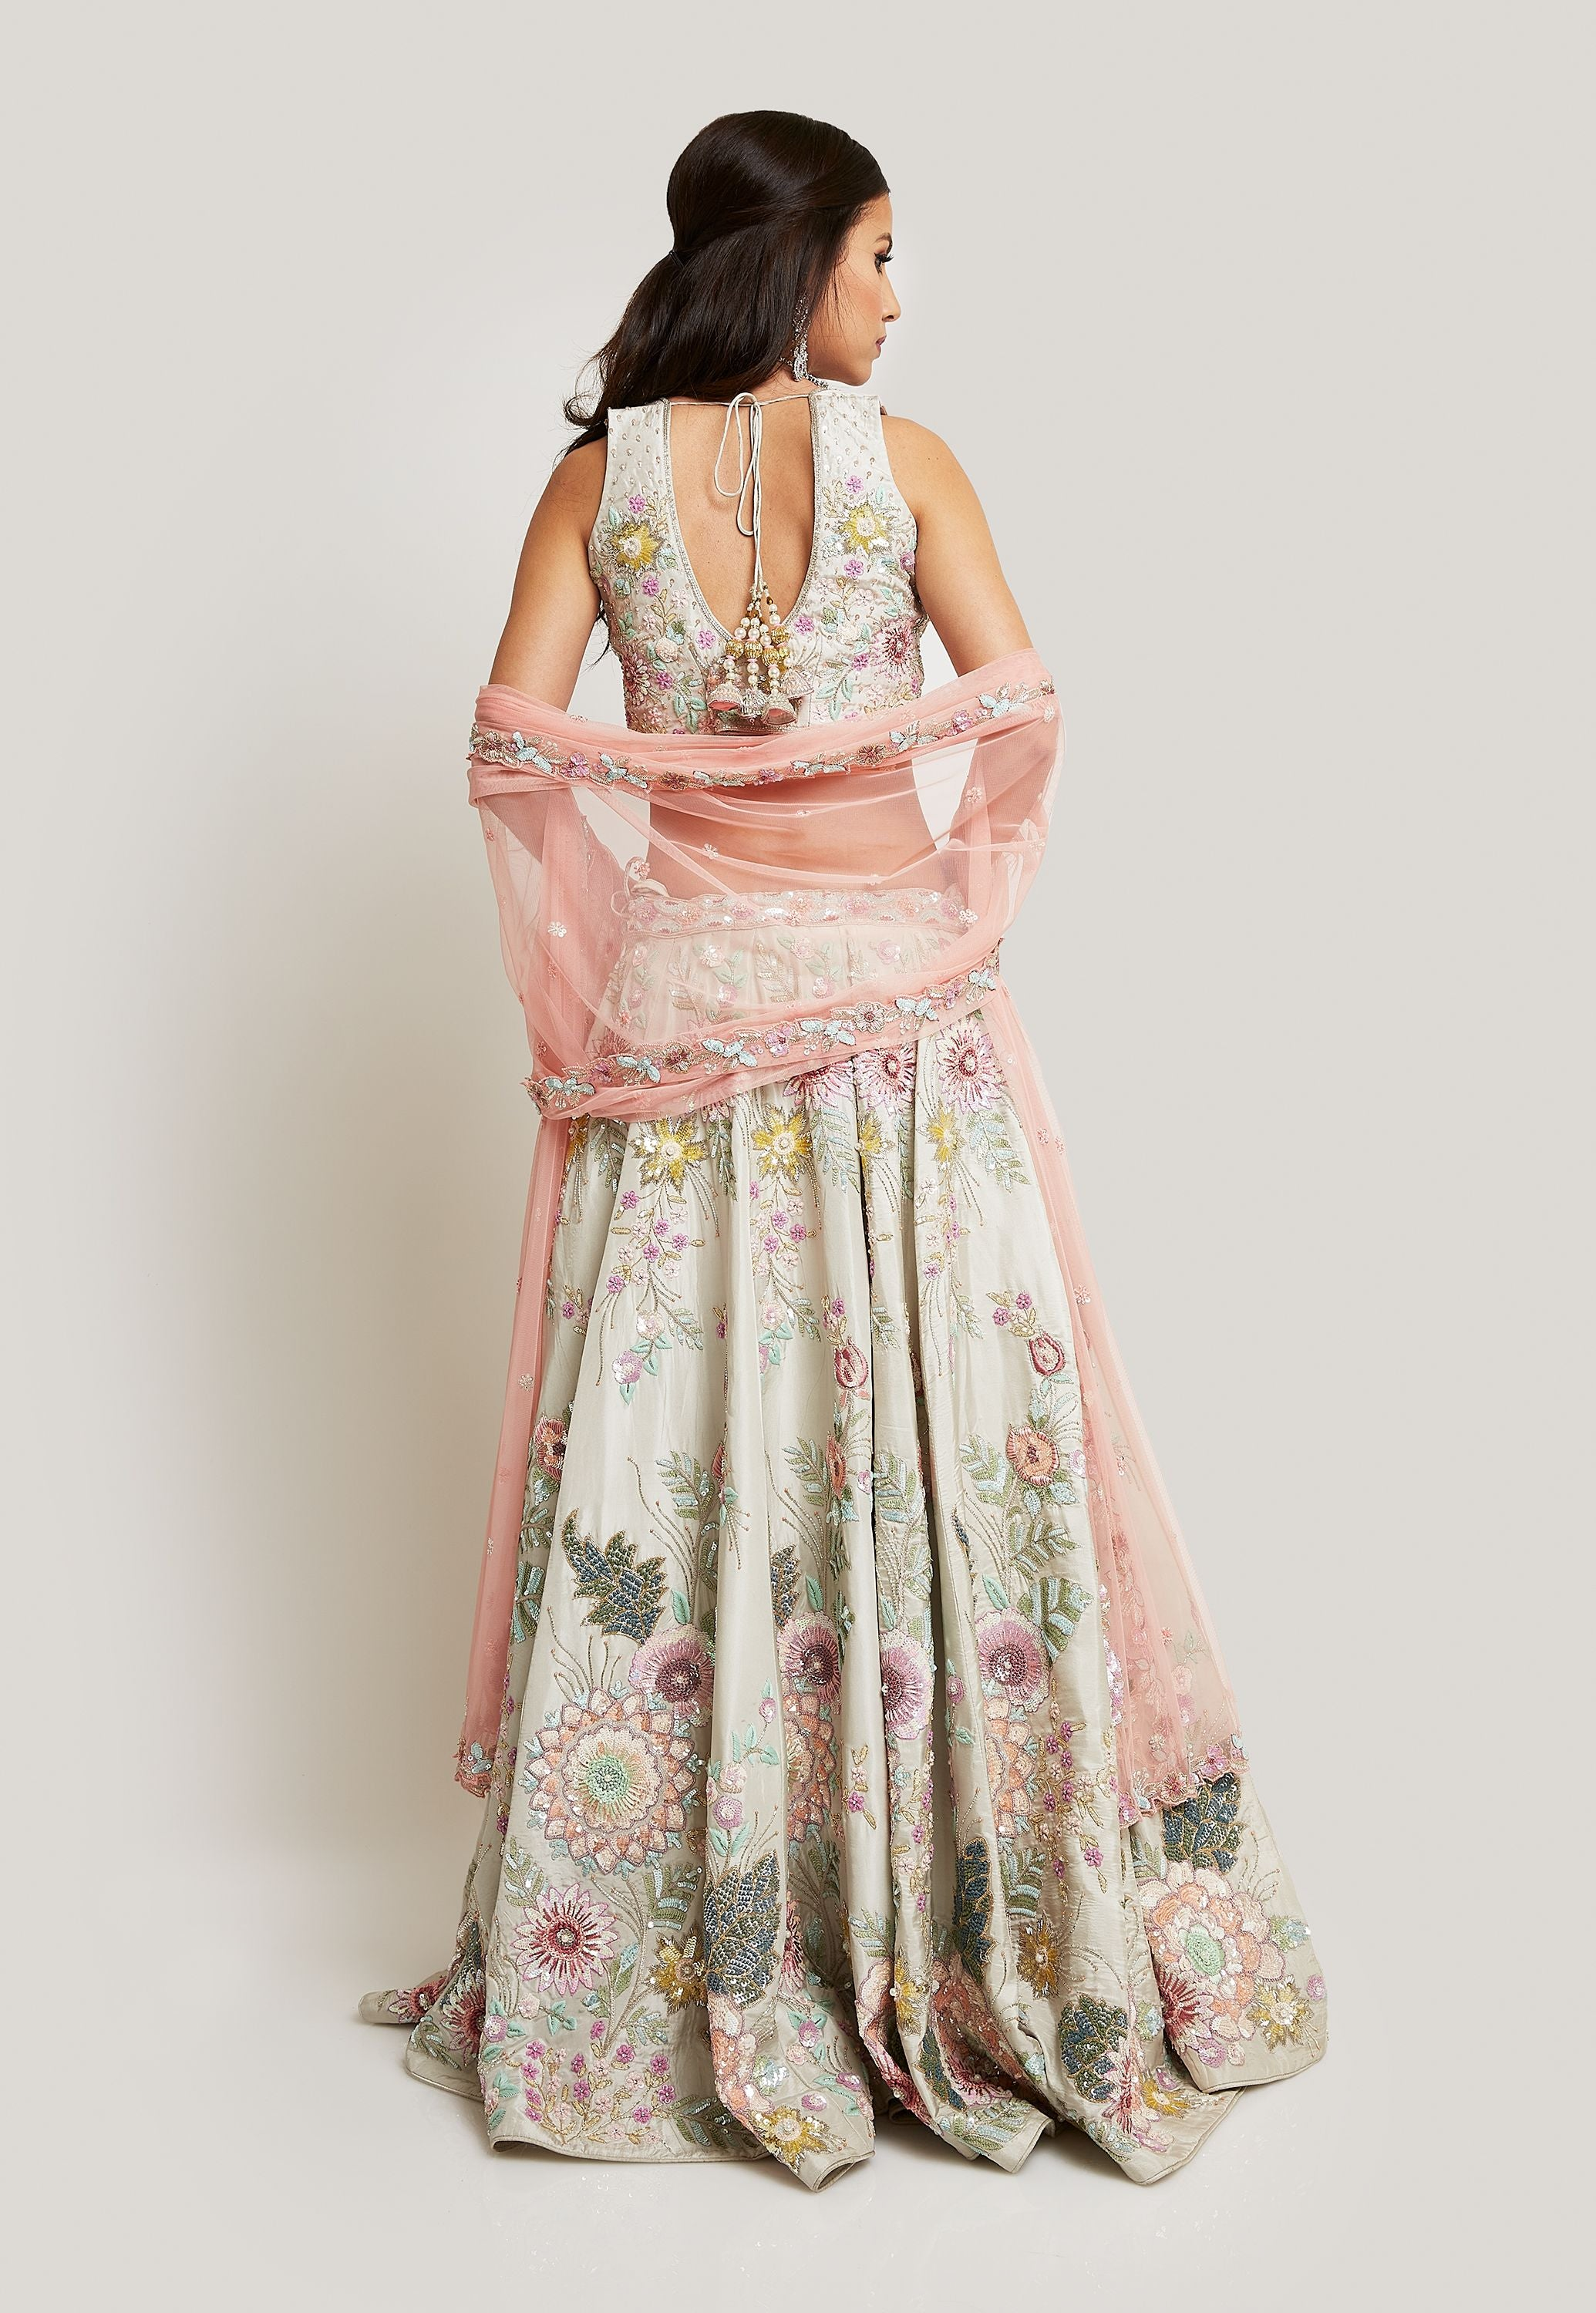 ORNATE BRIDAL LEHENGA DETAILED WITH INTRCATE FLORAL EMBROIDERY